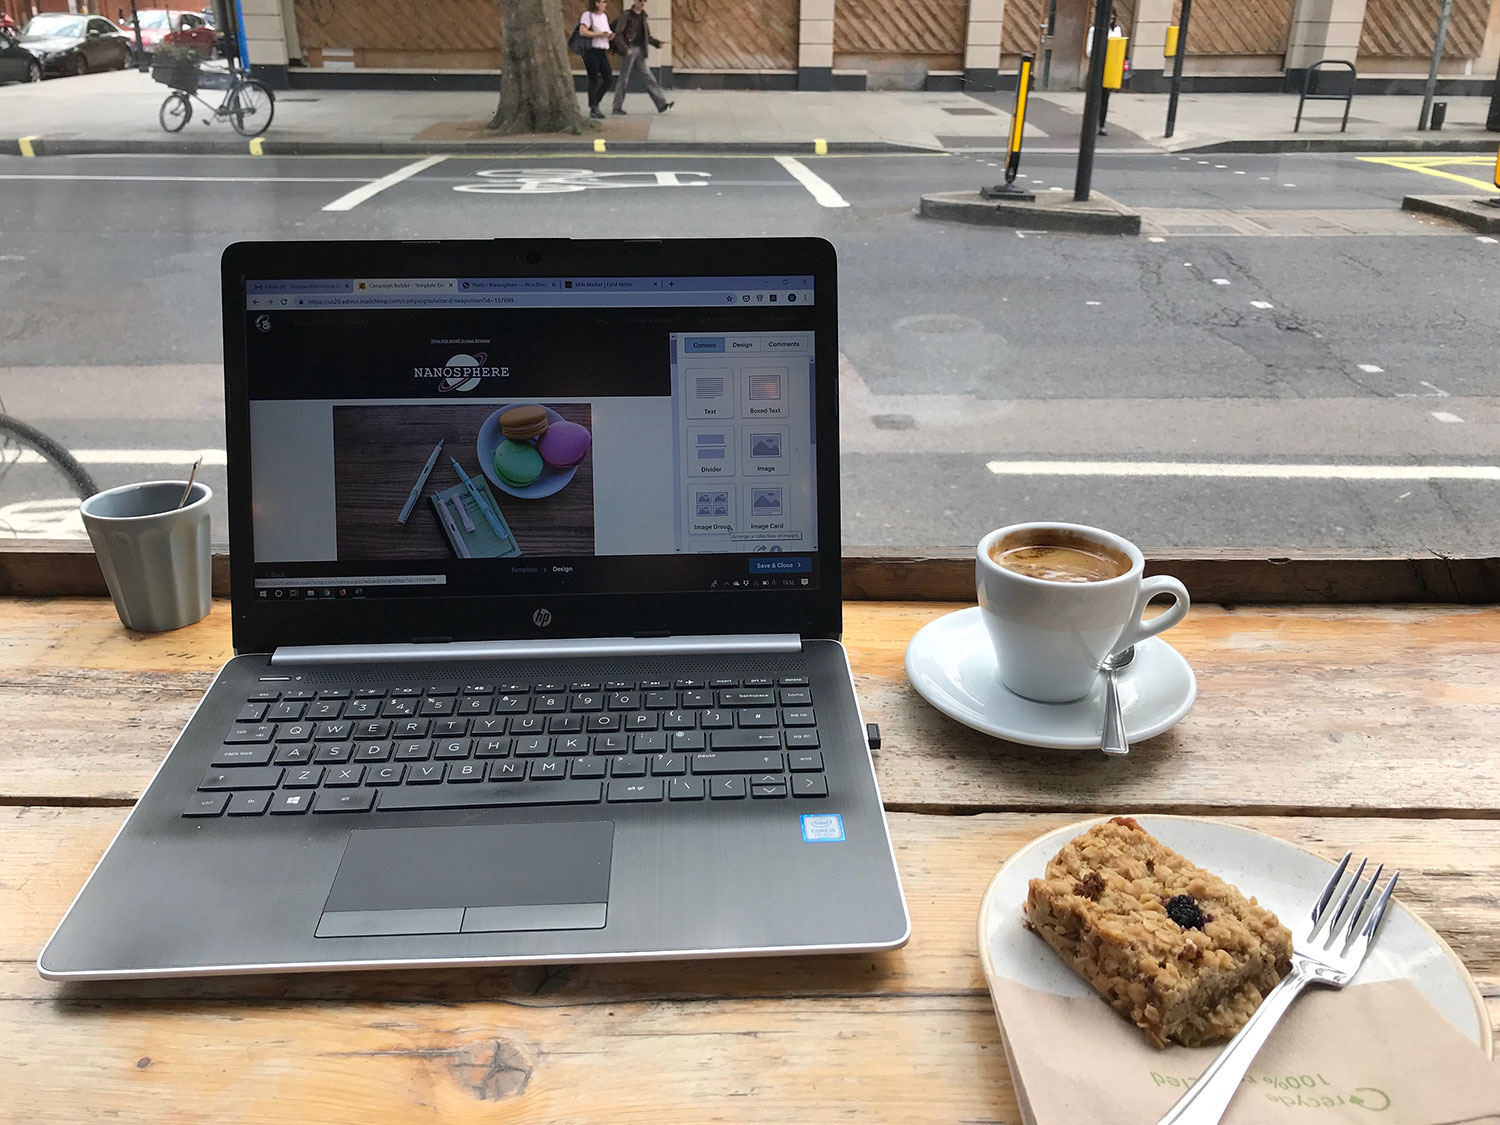 Top 5 Cafe Working Locations In London